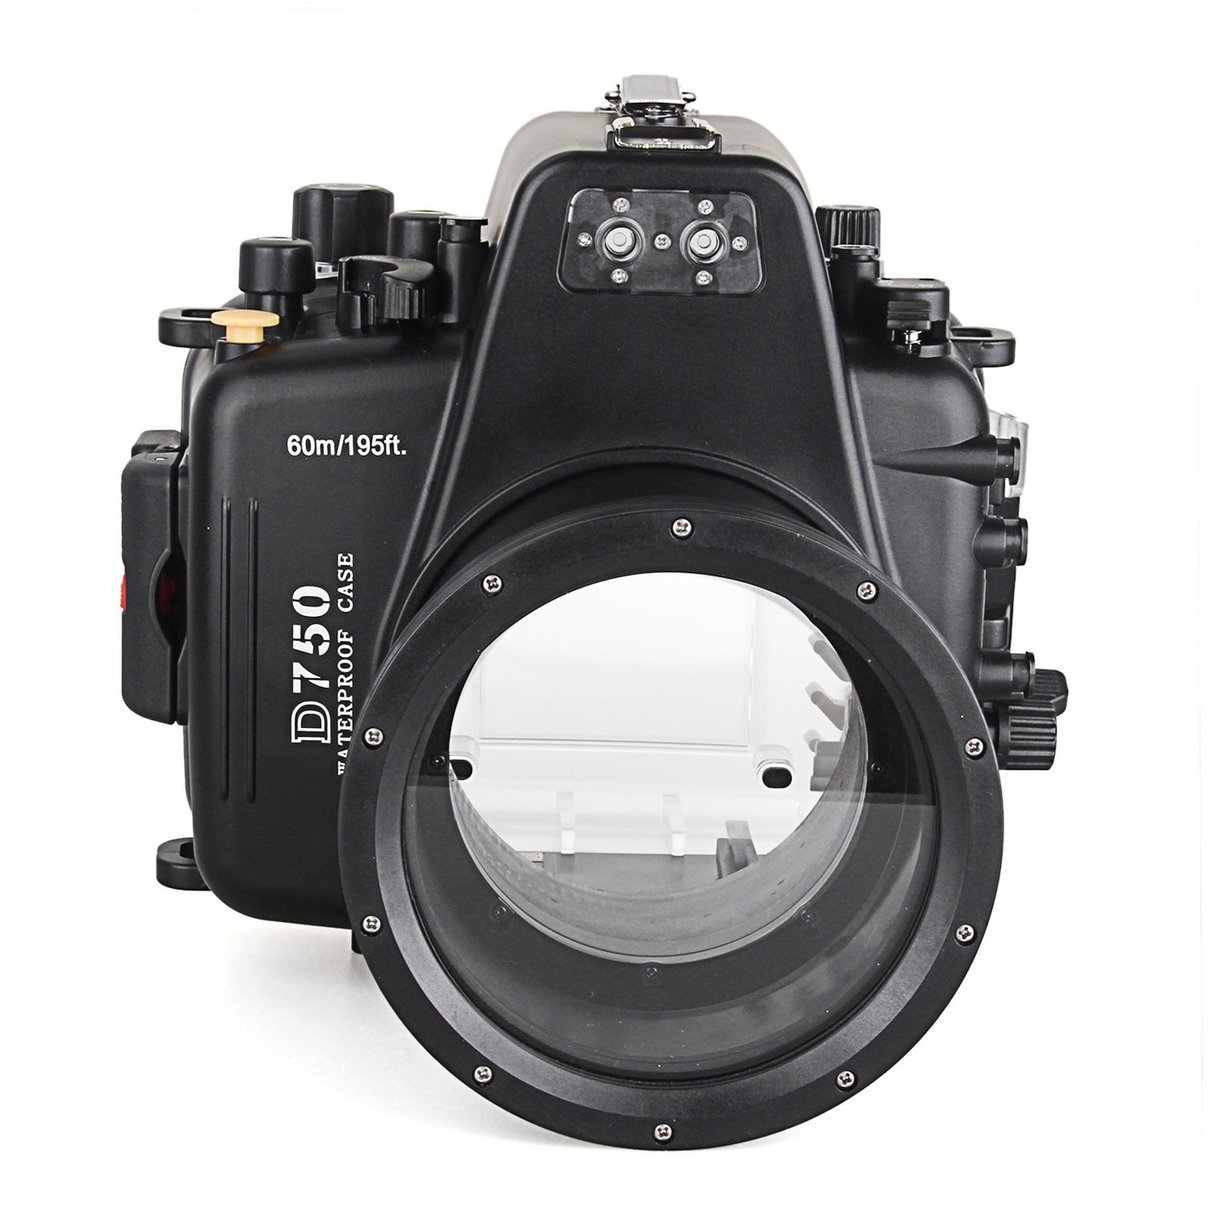 Meikon Waterproof Underwater Camera Housing Case Diving Equipment 60m/195ft for Nikon D750